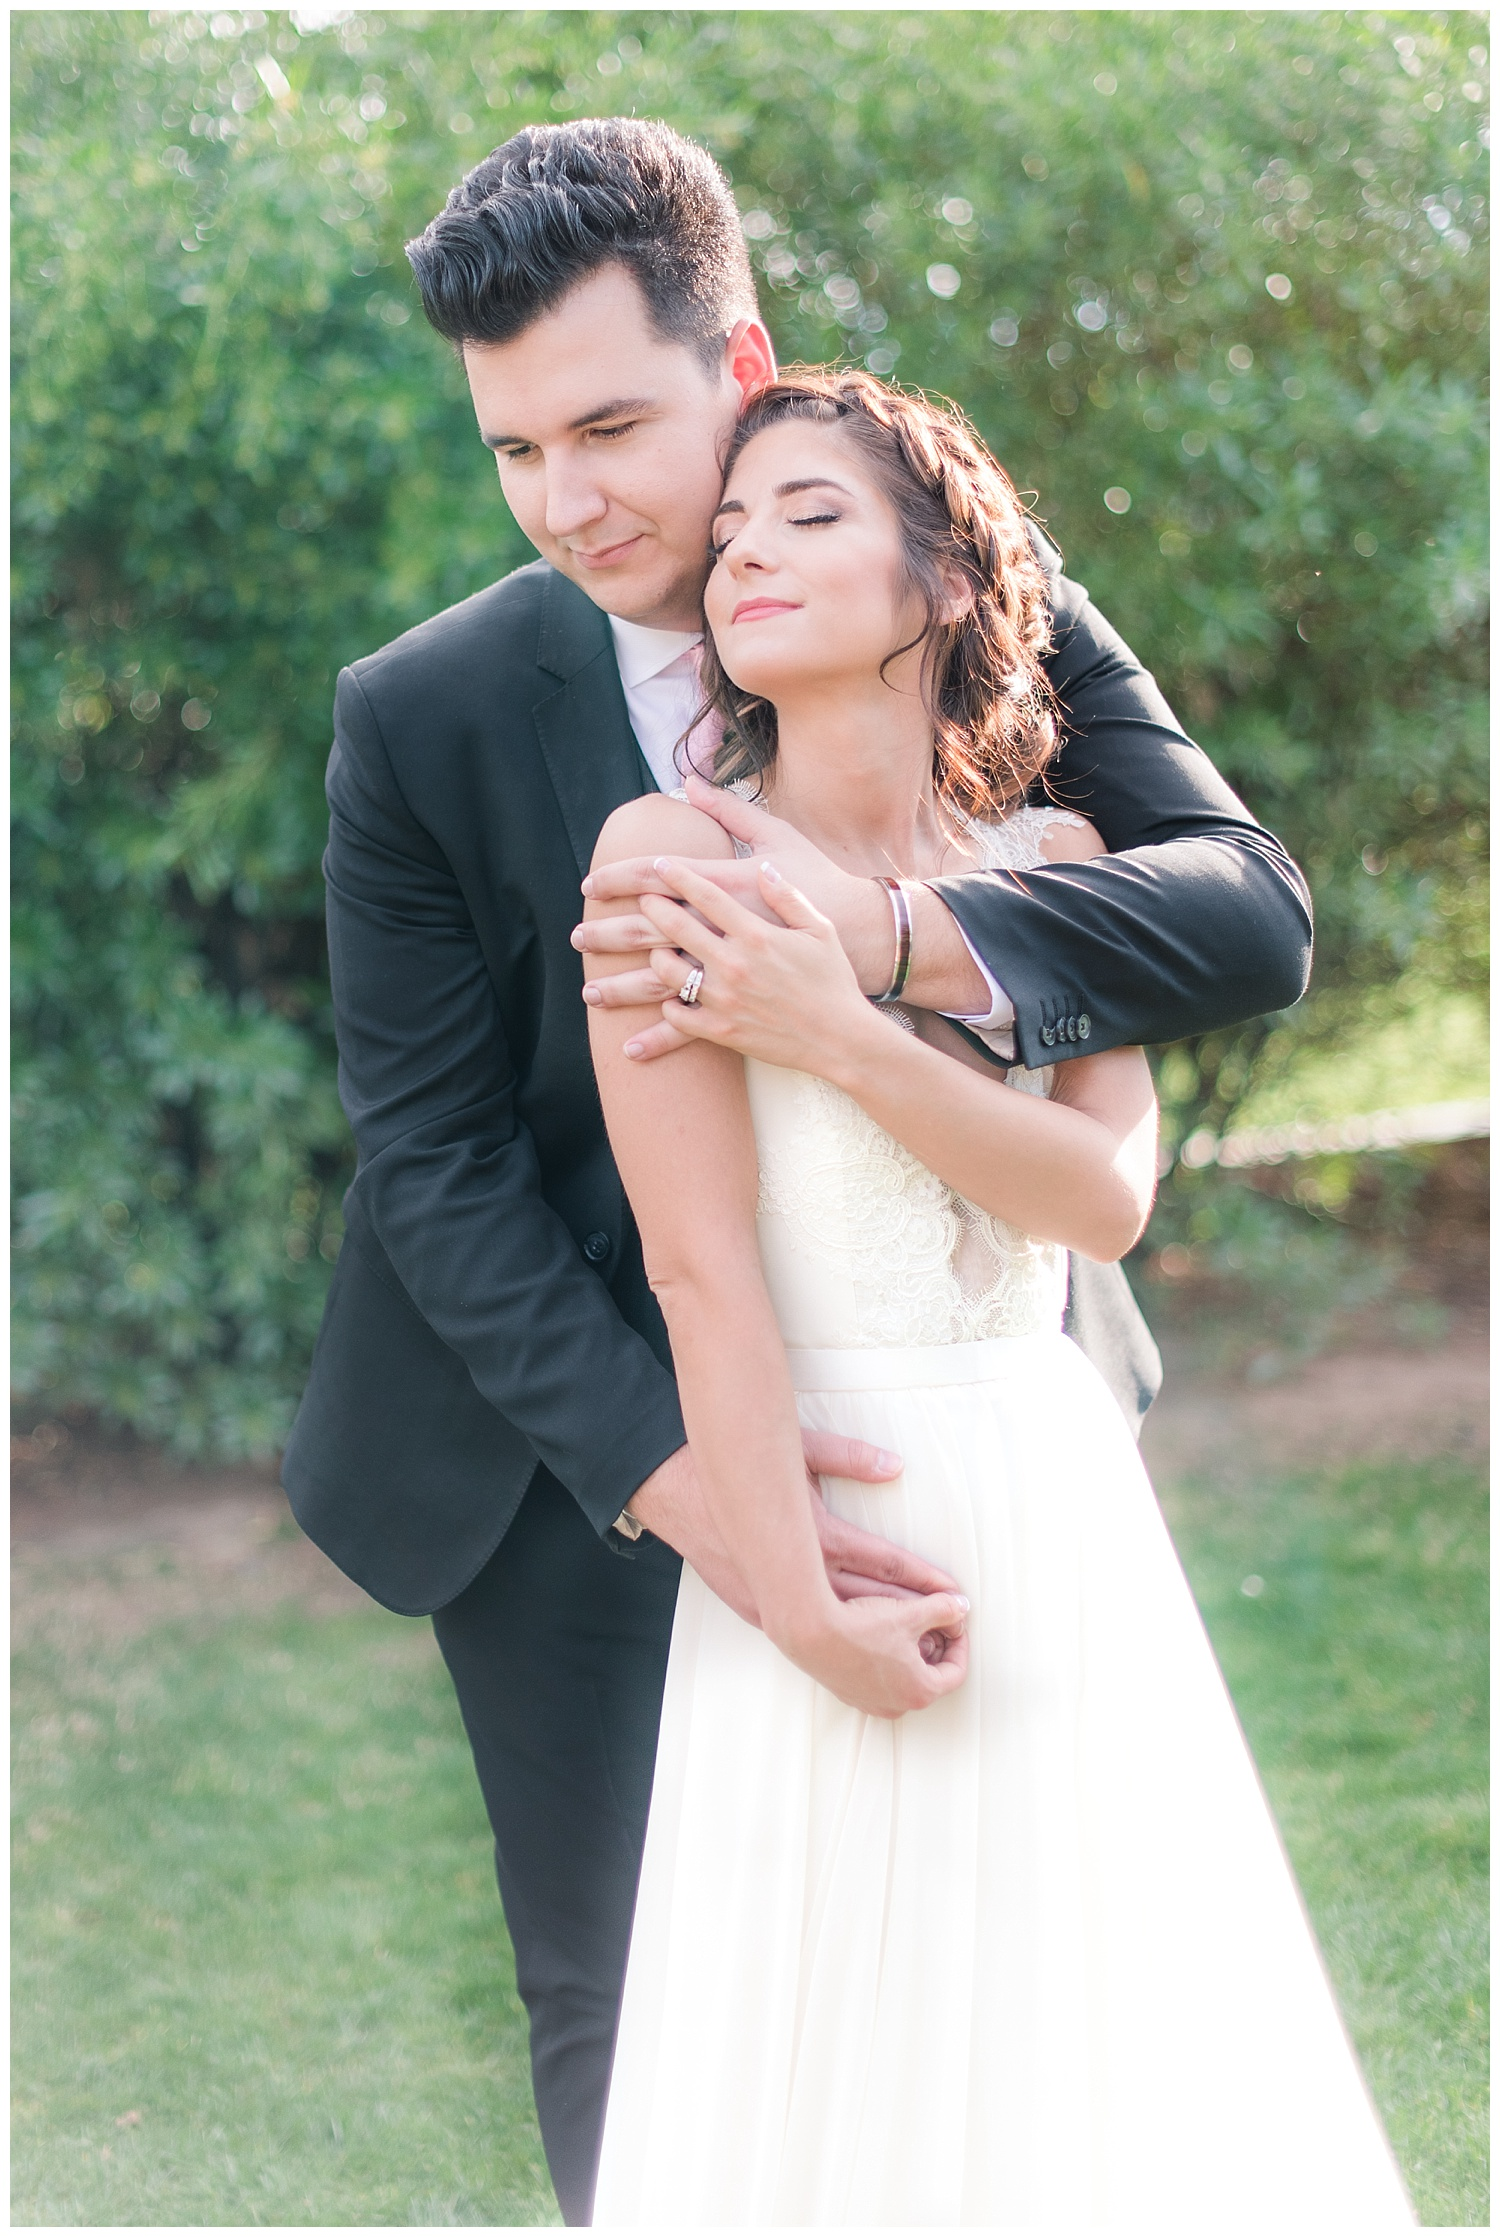 Bride Jessica wearing dress provided by Bella Lily Bridal in Phoenix and being held by groom Slaven, photographed at Gather Estate in Mesa, Arizona.